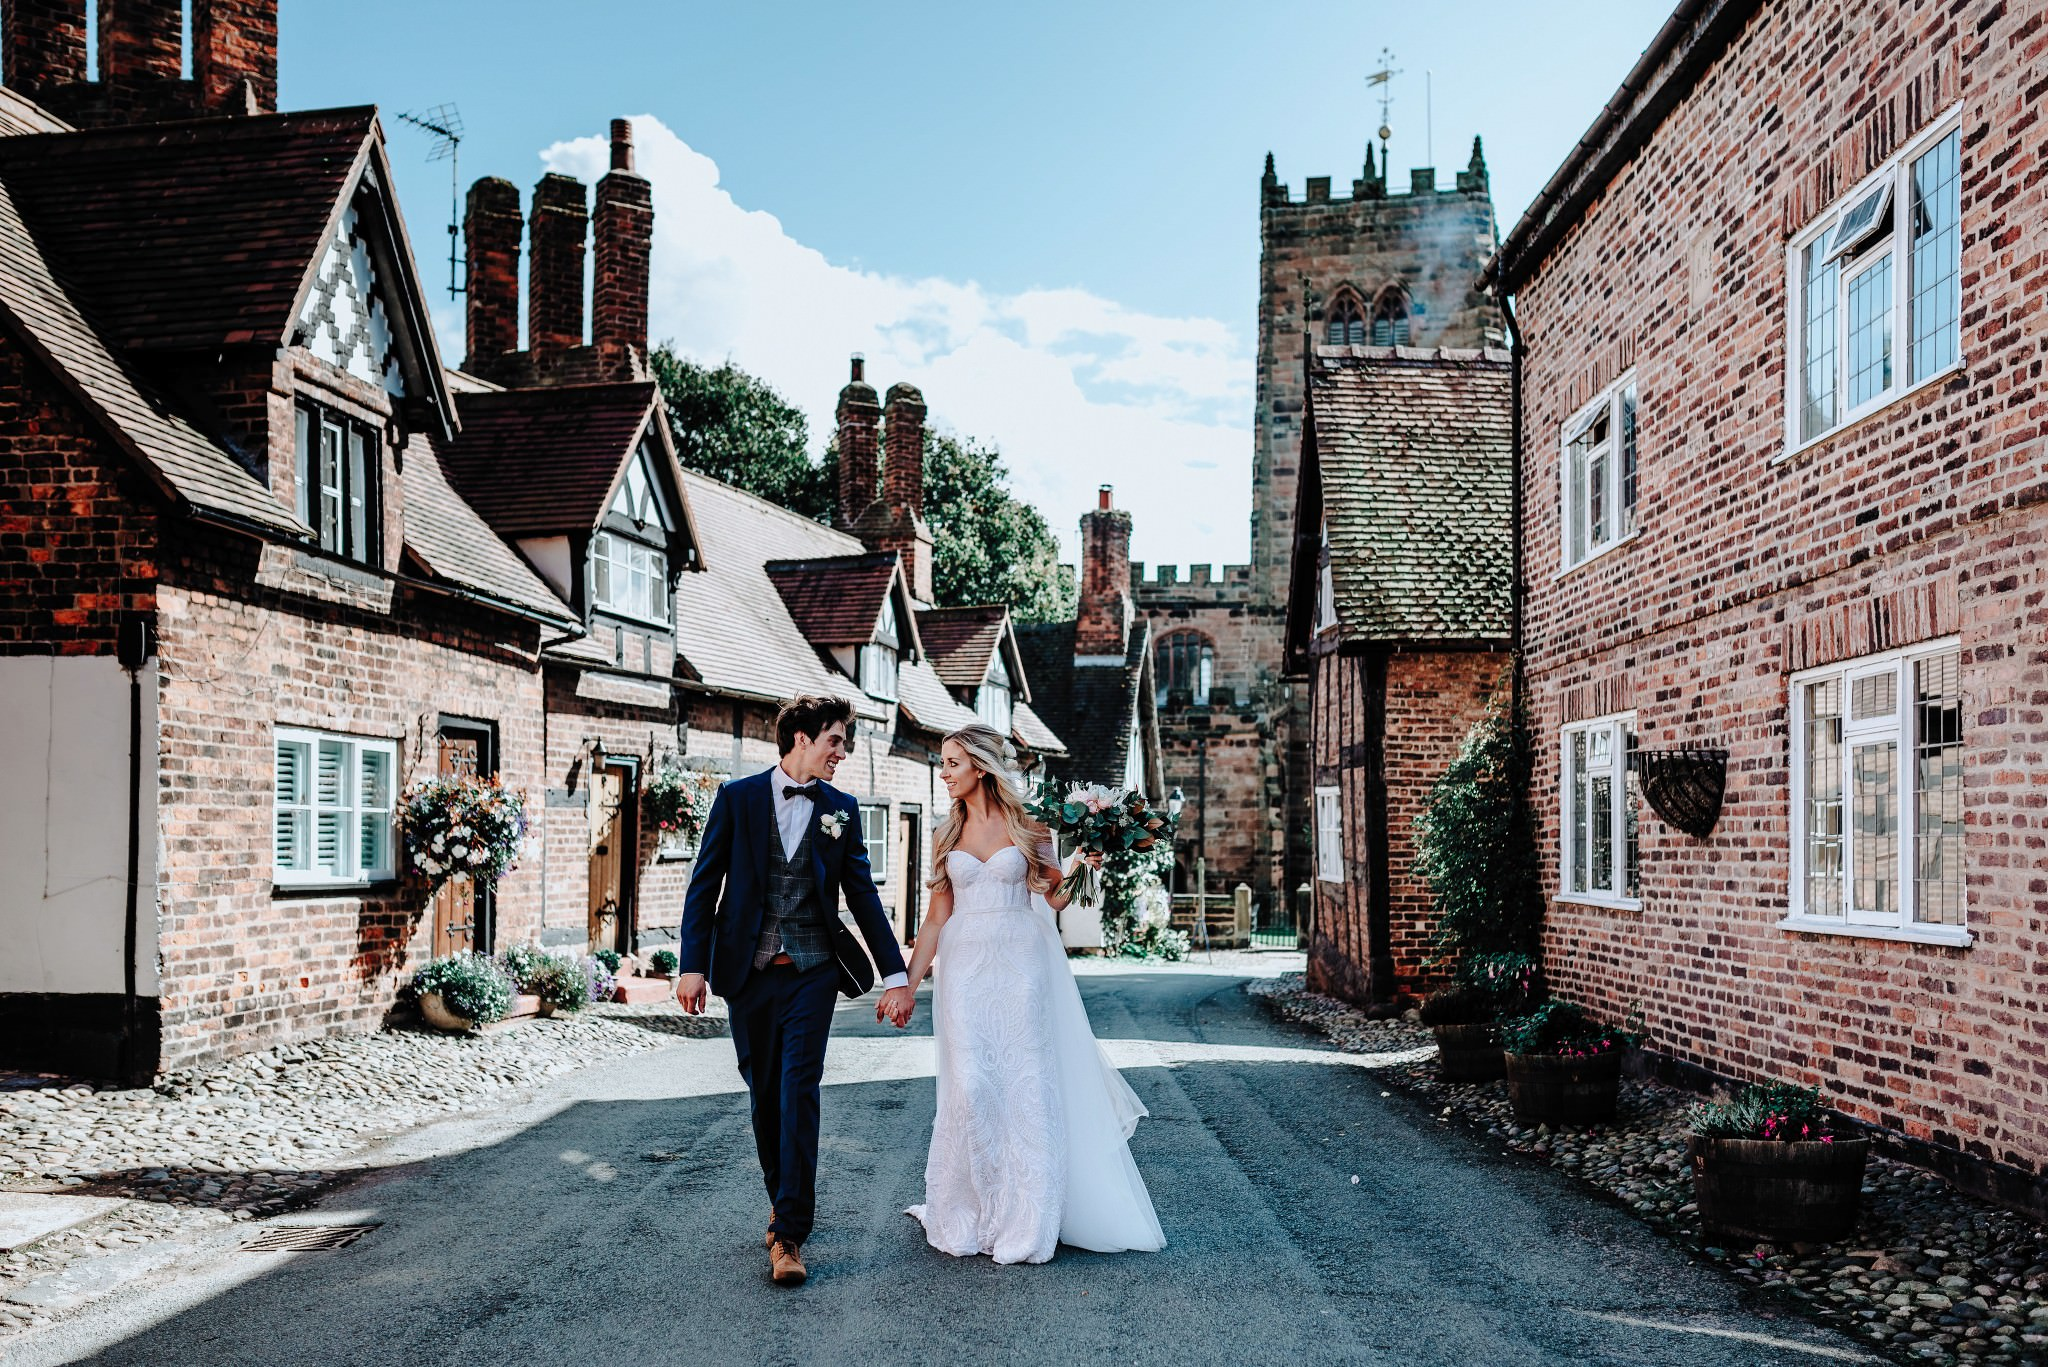 Bride and Groom walking through Great Budworth in Cheshire